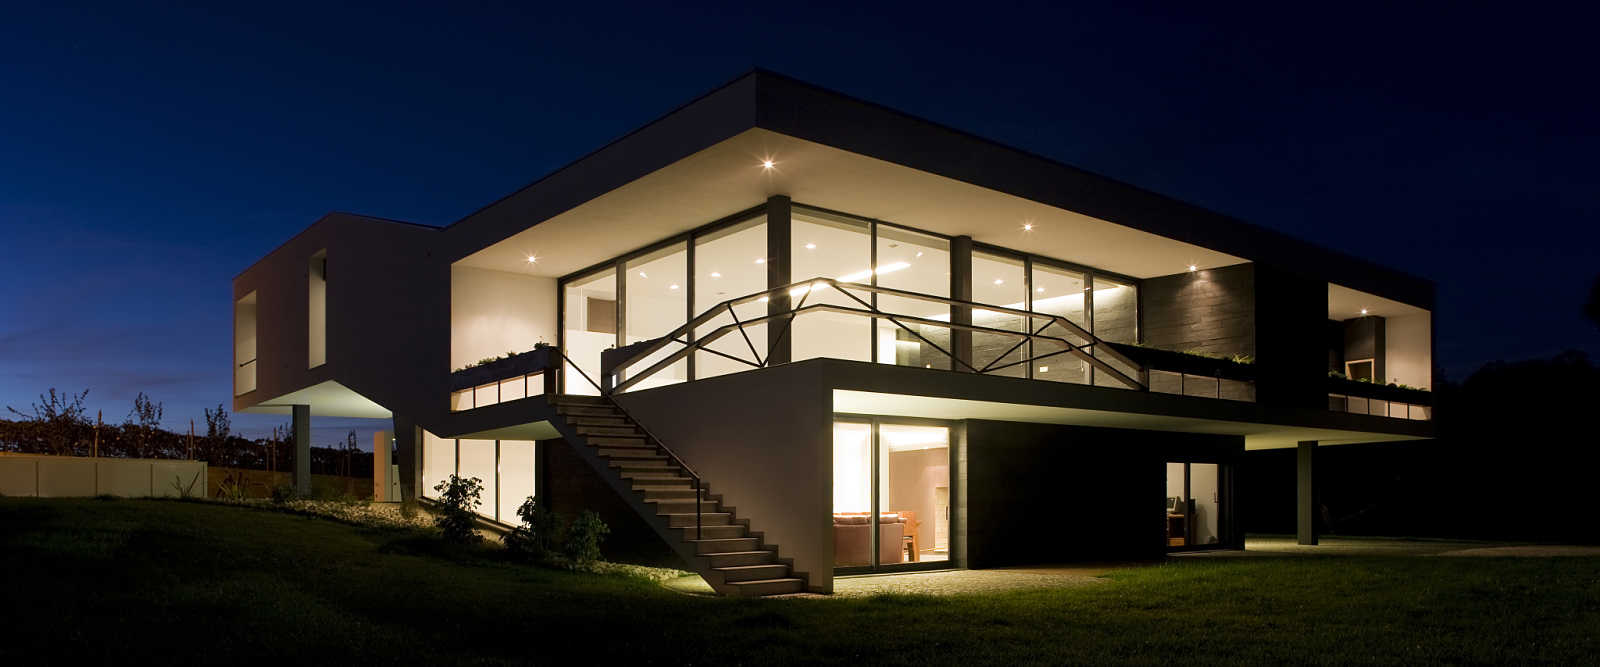 Night Time Illuminated Contemporary Aluminium Windows